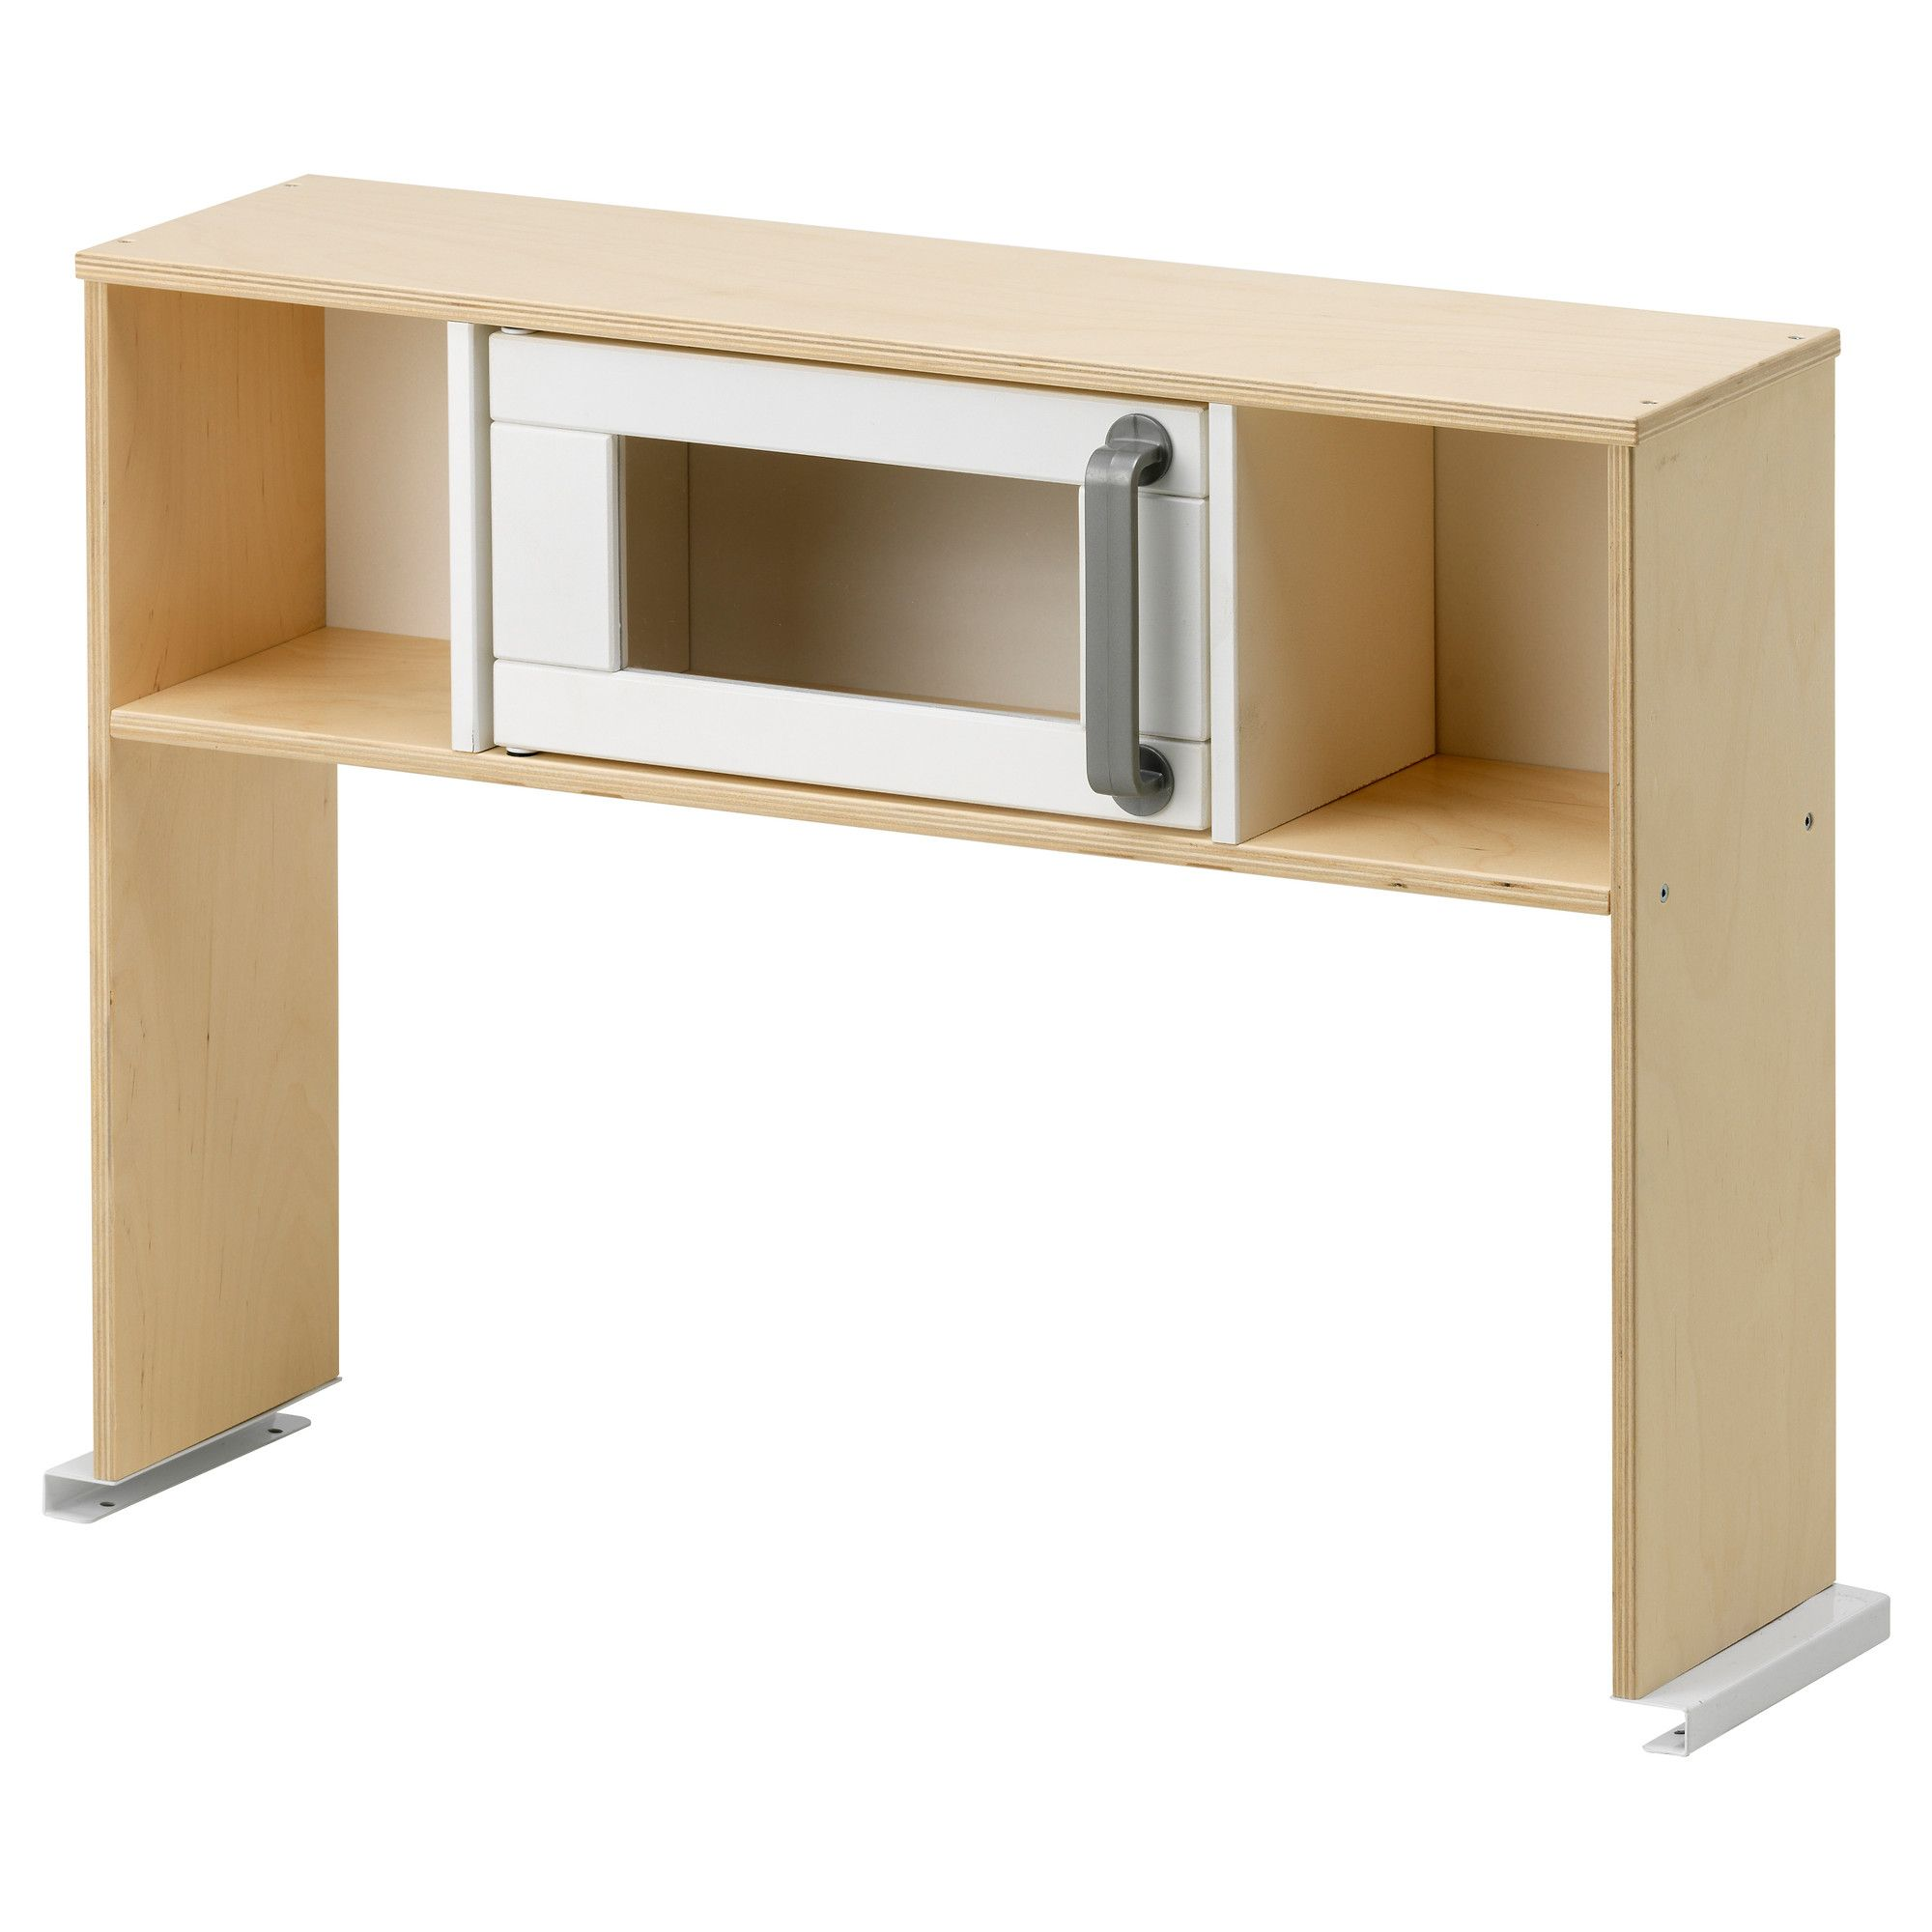 DUKTIG Top section for play kitchen - IKEA | Ikea Home | Pinterest ...